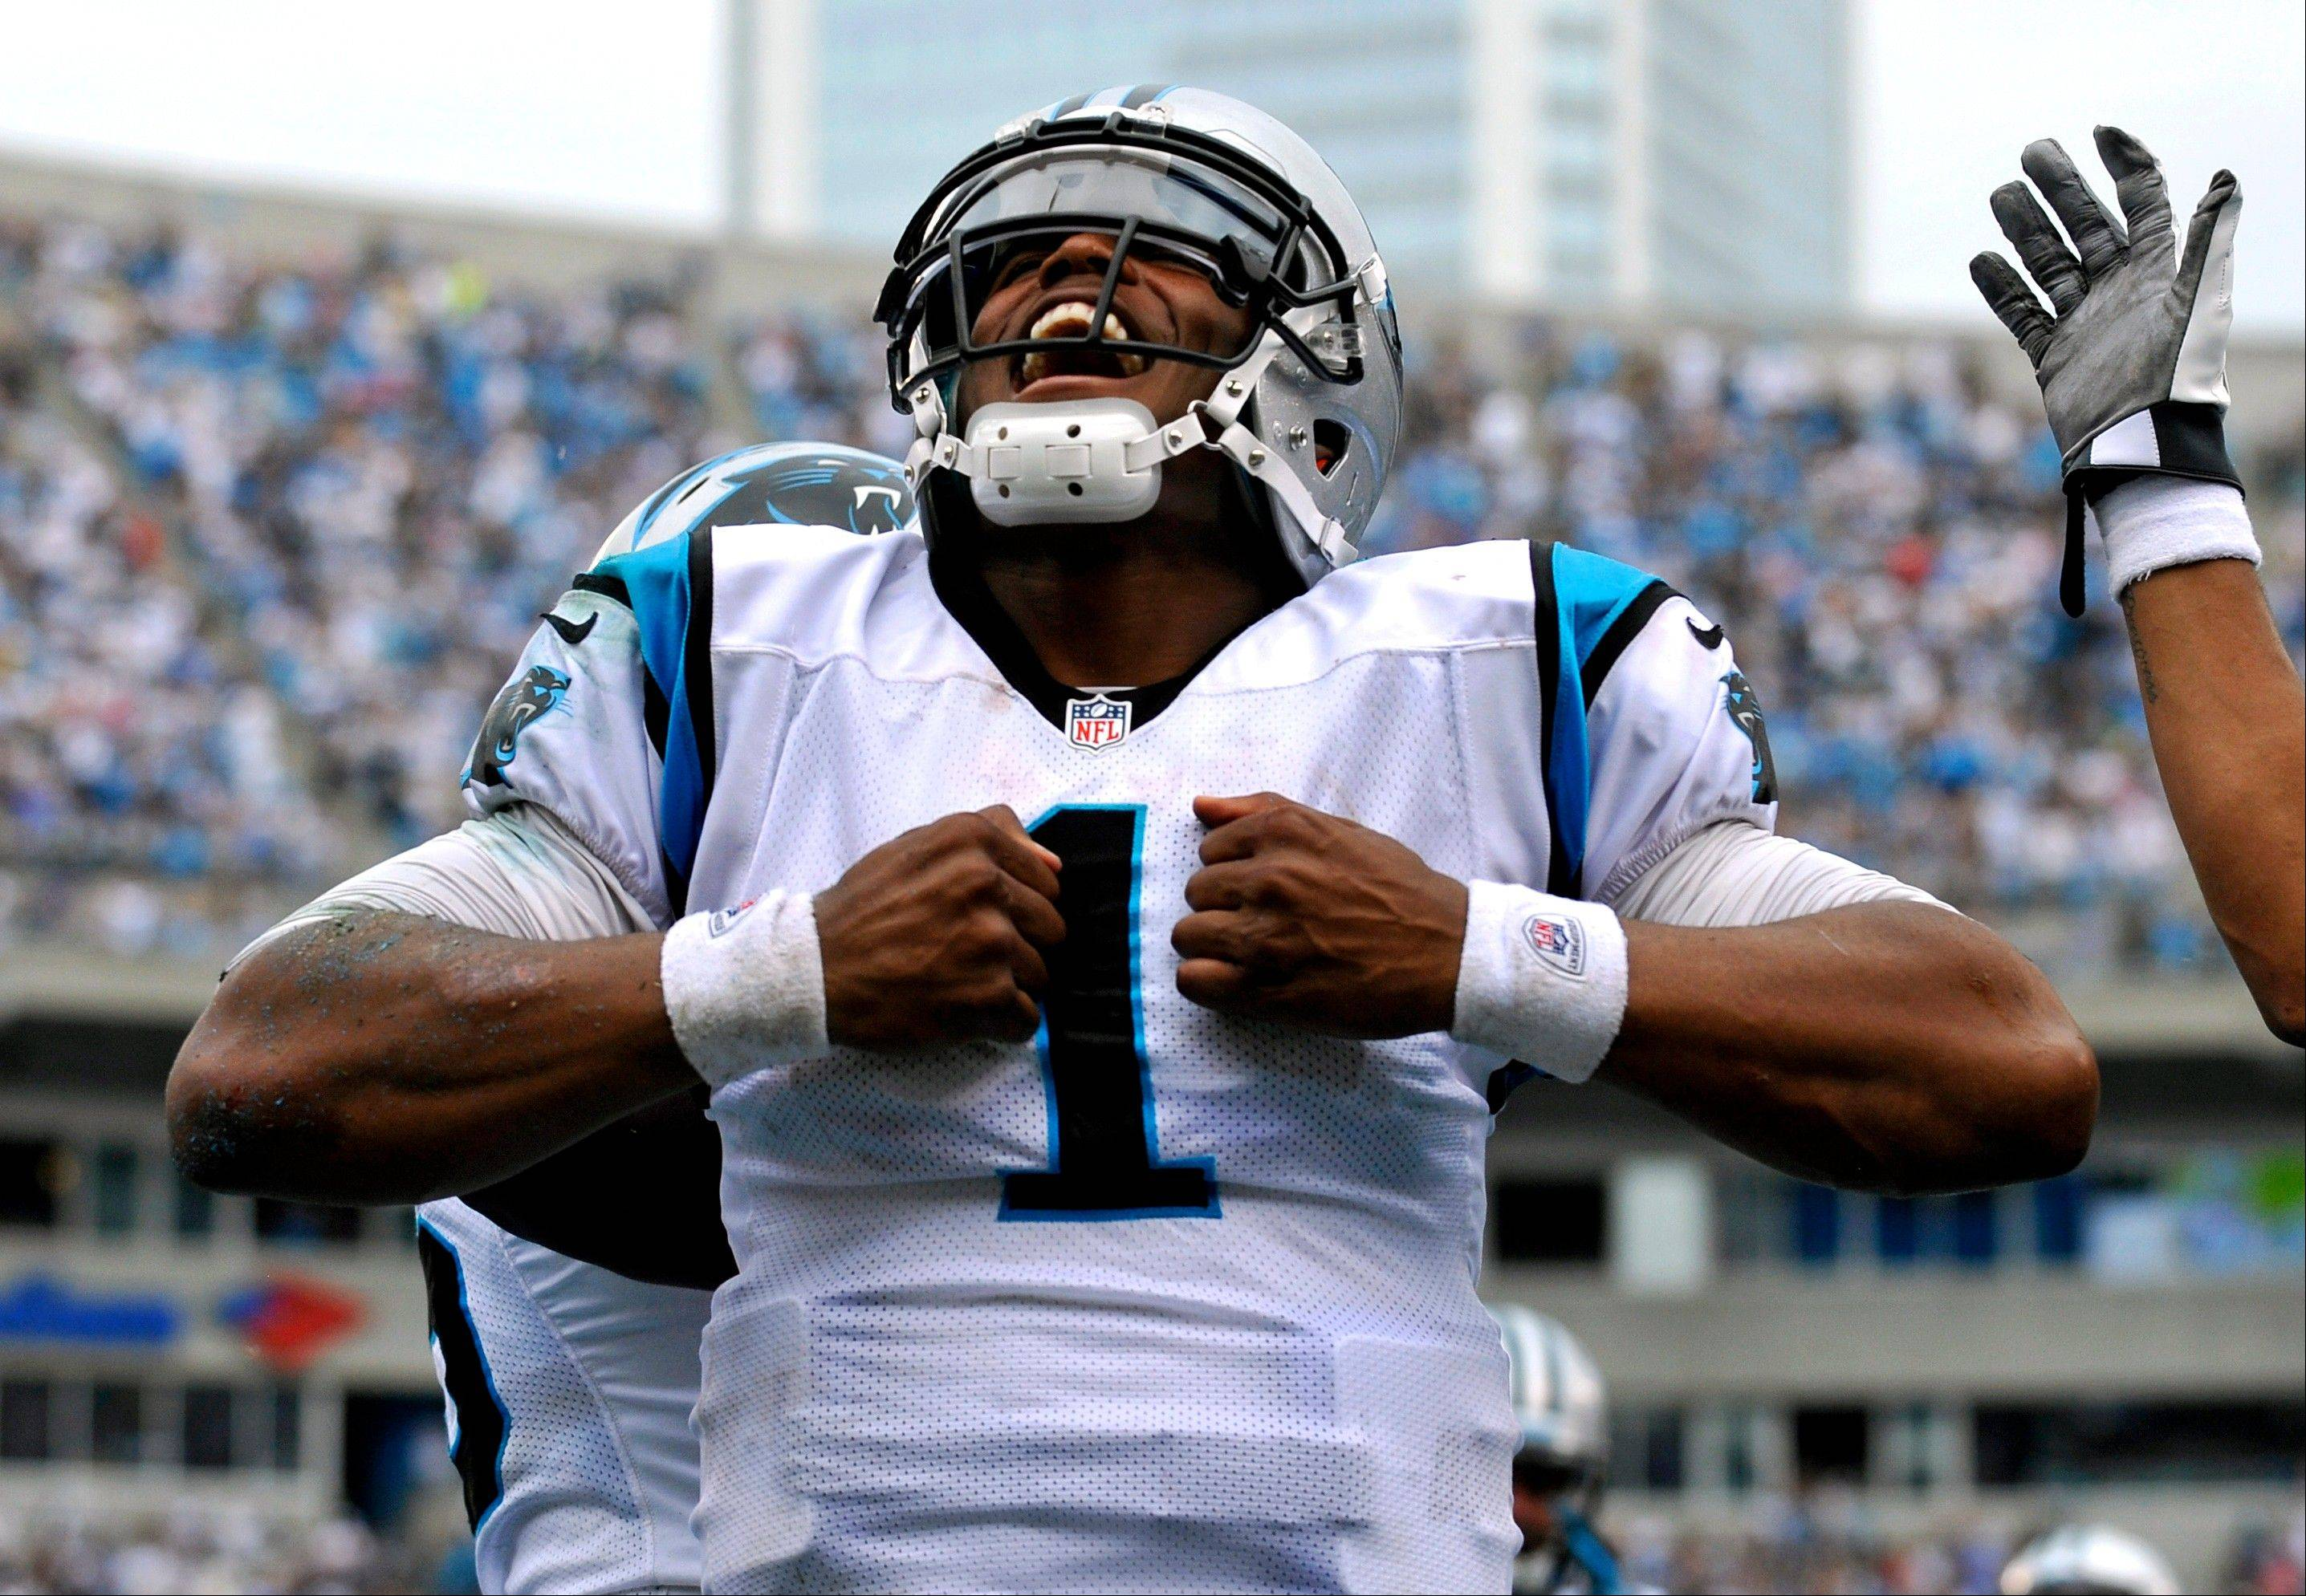 Carolina Panthers� Cam Newton (1) reacts after running for a touchdown against the New Orleans Saints during the fourth quarter in Charlotte, N.C.